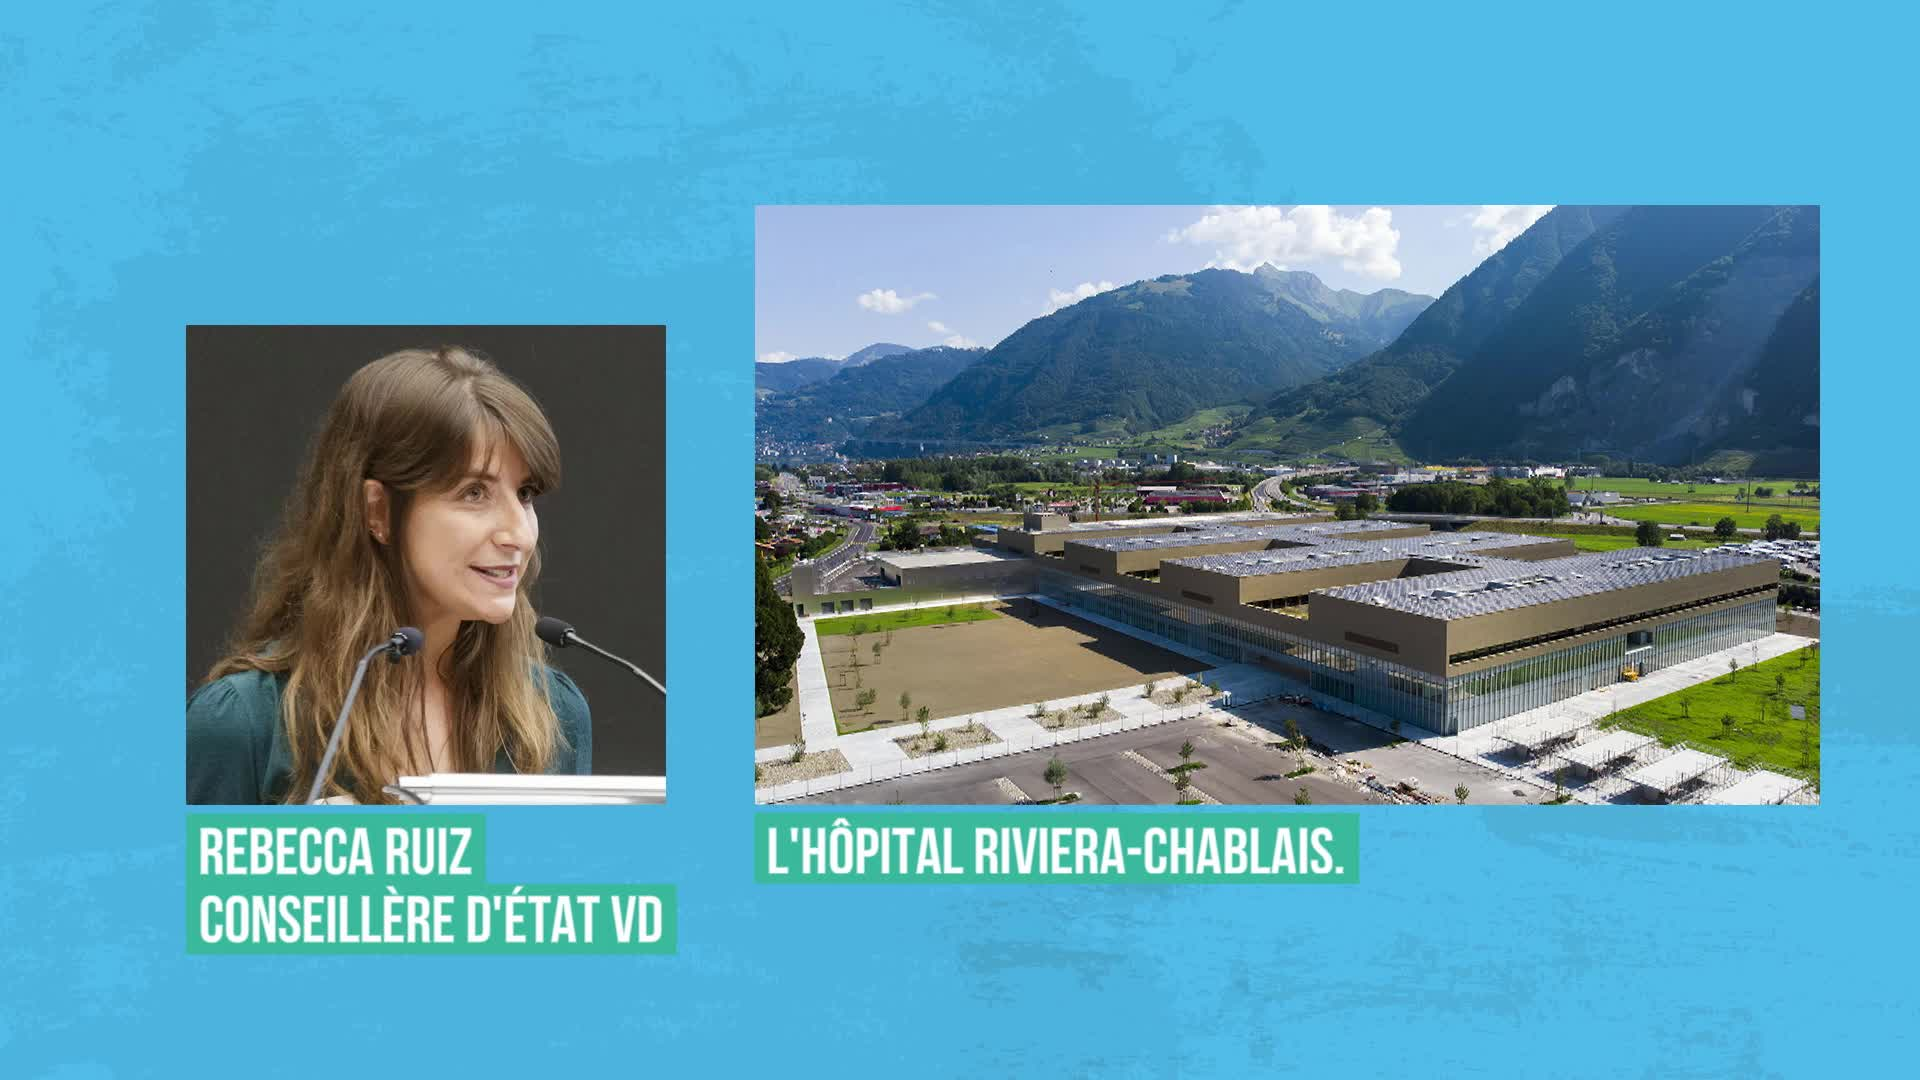 Cinq institutions réunies au nouveau Centre hospitalier de Rennaz: interview de Rebecca Ruiz